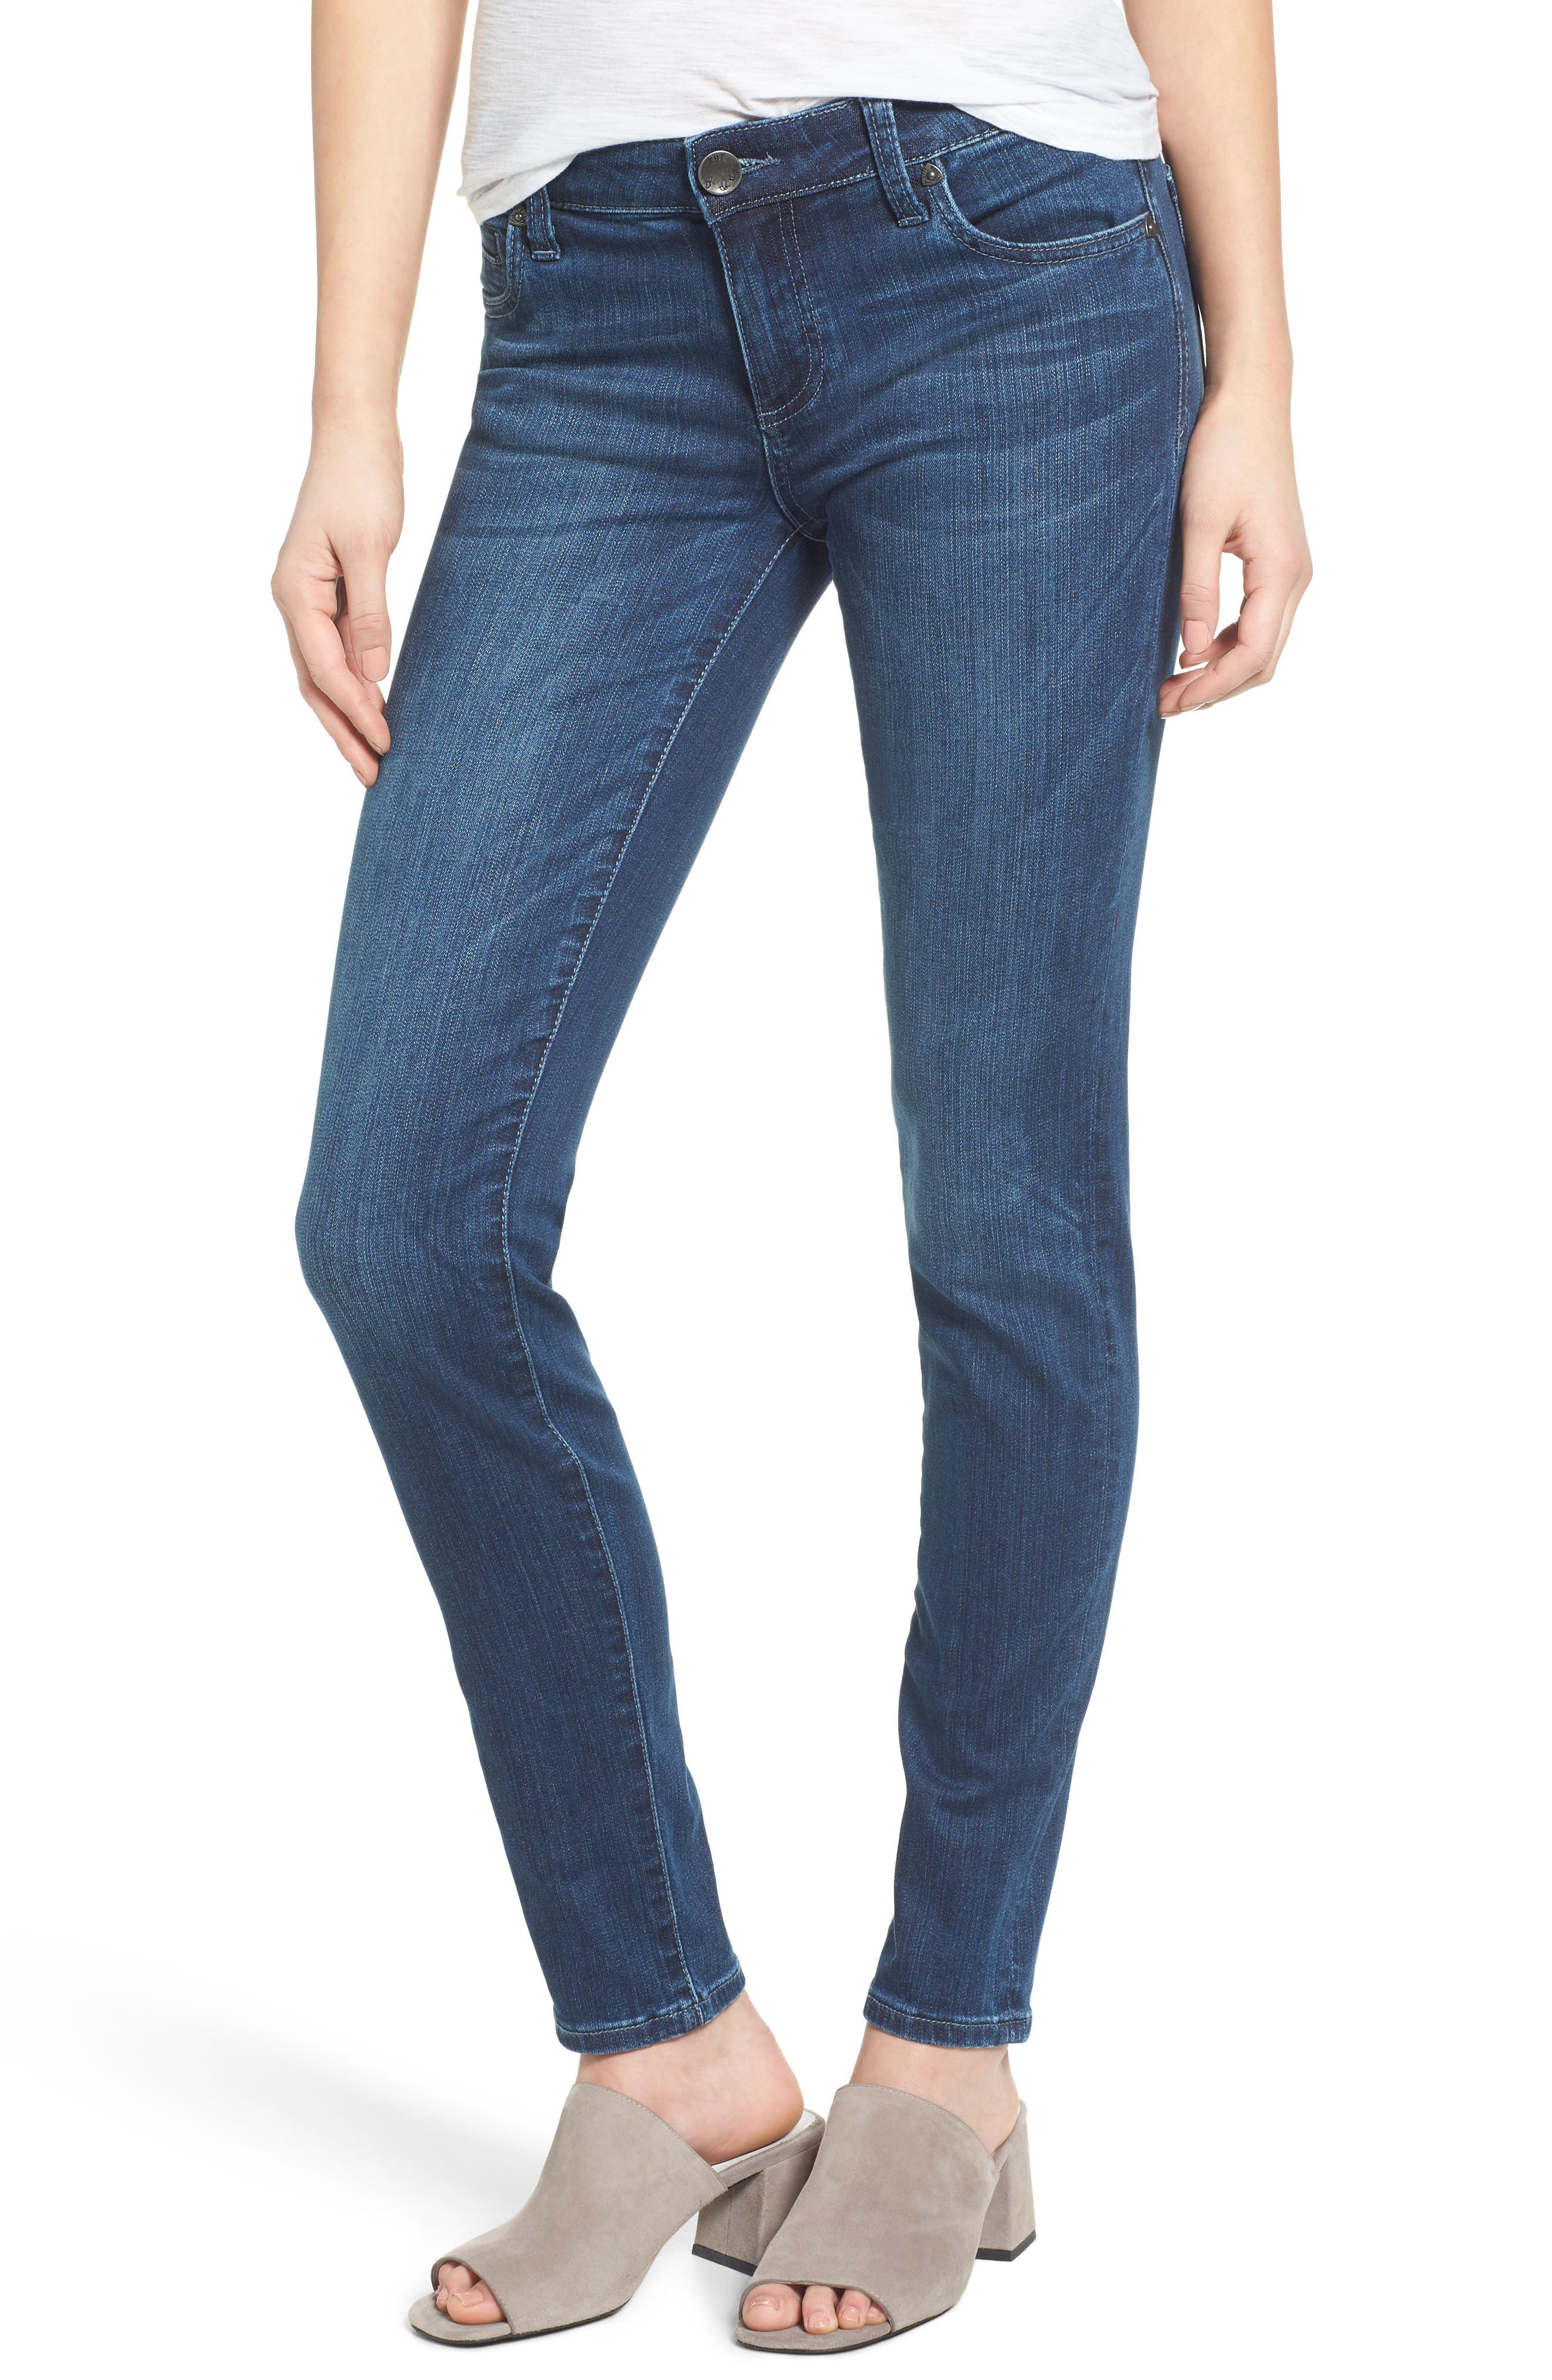 Alternate Image 1 Selected - KUT from the Kloth Diana Stretch Skinny Jeans (Moderation) (Regular & Petite)